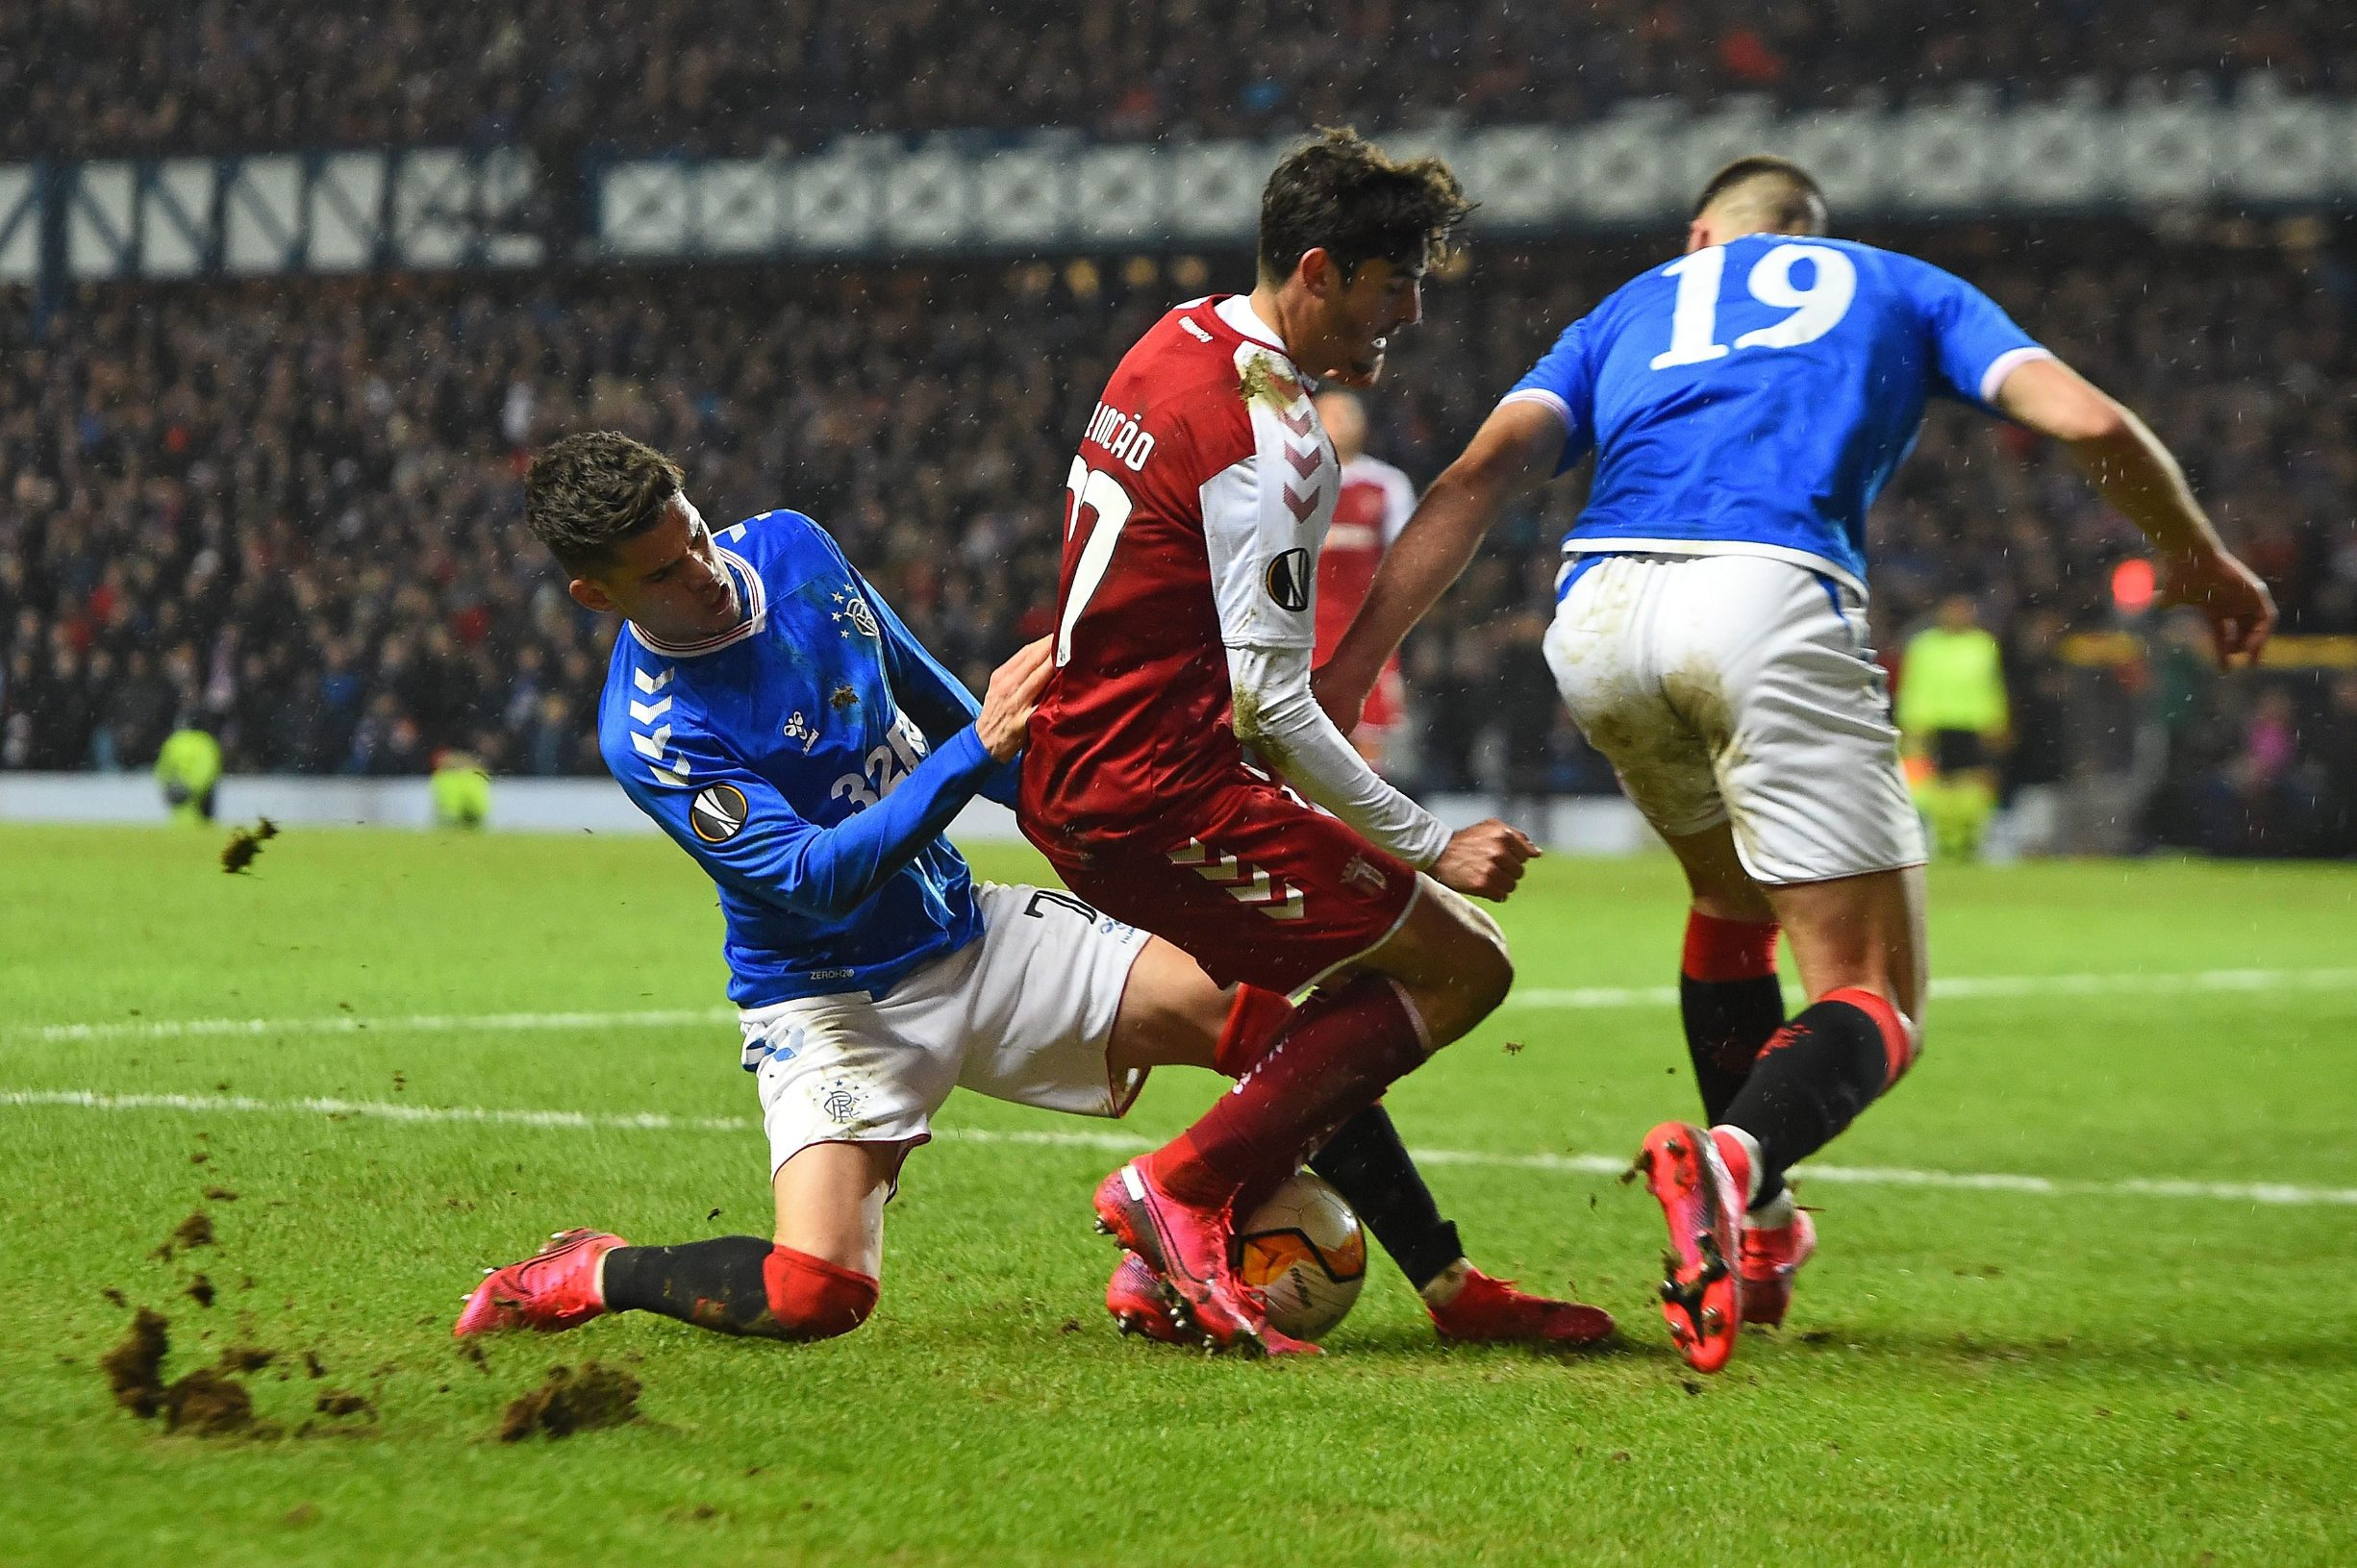 Rangers' Romanian midfielder Ianis Hagi (L) tackles Sporting Braga's Portuguese striker Trincao (C) during the UEFA Europa League round of 32 first leg football match between Rangers and Sporting Braga at the Ibrox Stadium in Glasgow on February 20, 2020. (Photo by ANDY BUCHANAN / AFP)